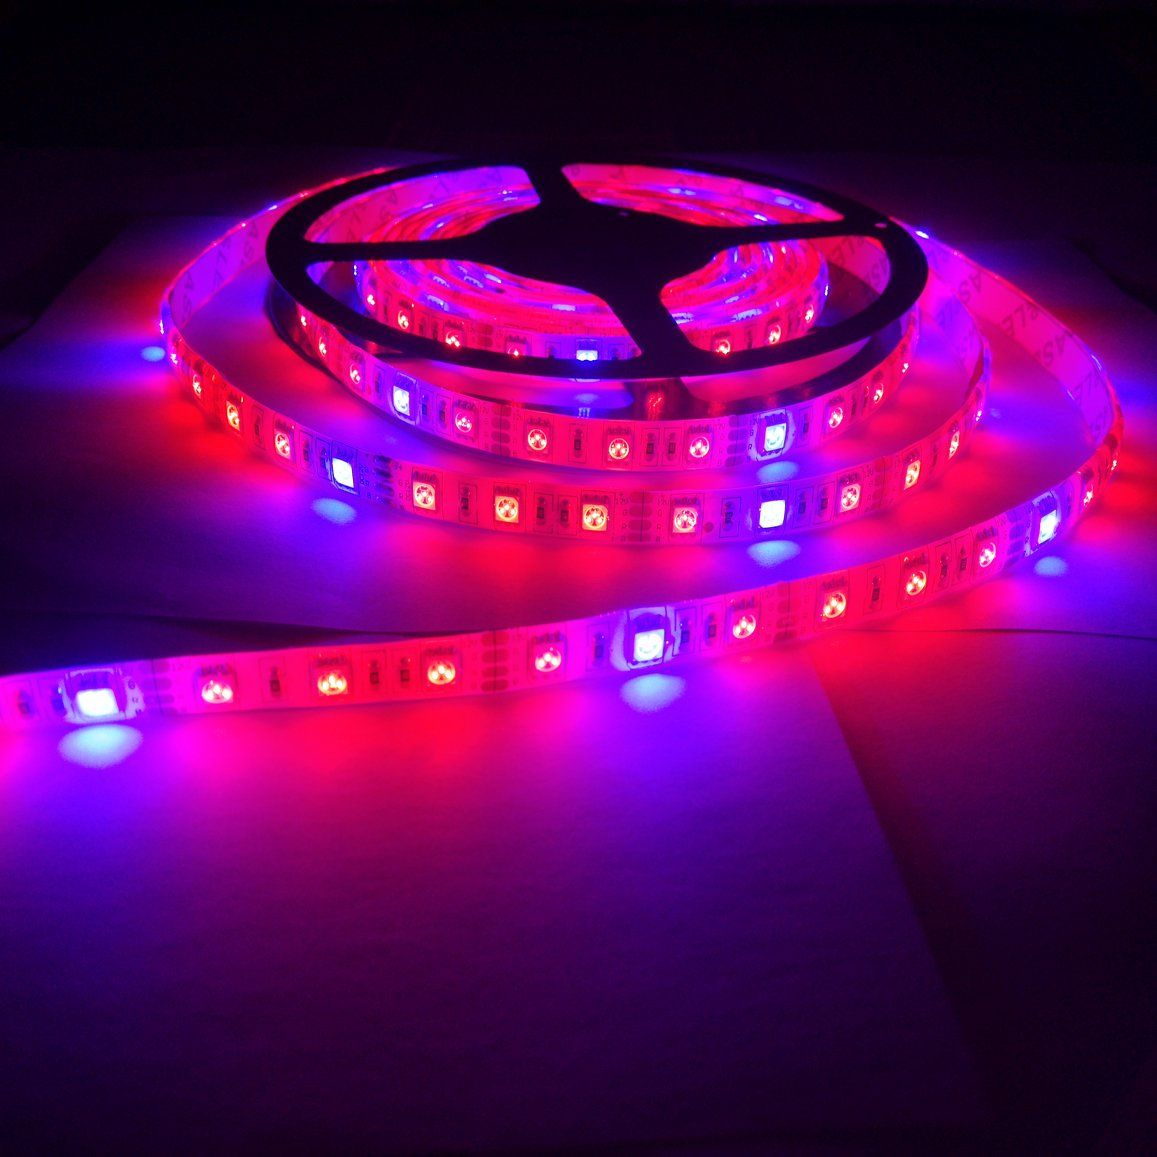 Amazon Com Toogod Full Spectrum 16 4ft 5m 5050 Waterproof Led Strip Plant Growing Light Red Blue 4 1 For Aquar Grow Lights For Plants Grow Lights Hydroponics